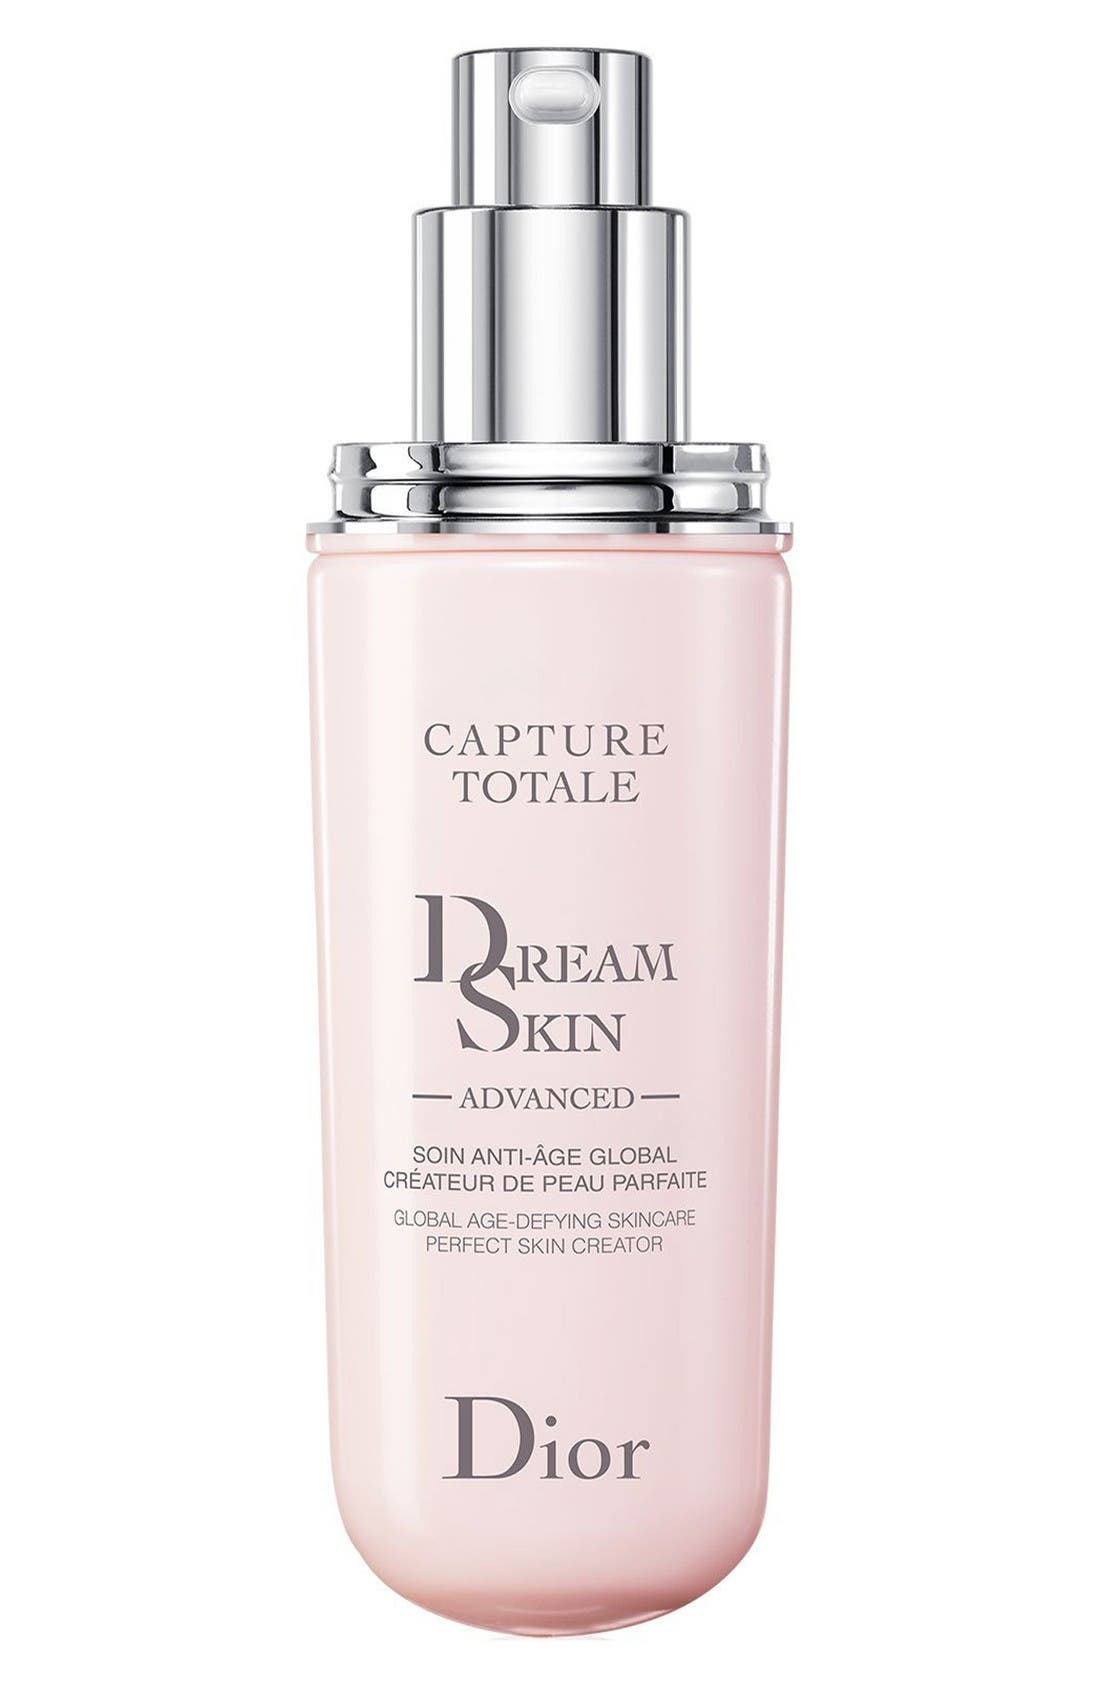 Dior Capture Totale DreamSkin Advanced Perfect Skin Creator Refill